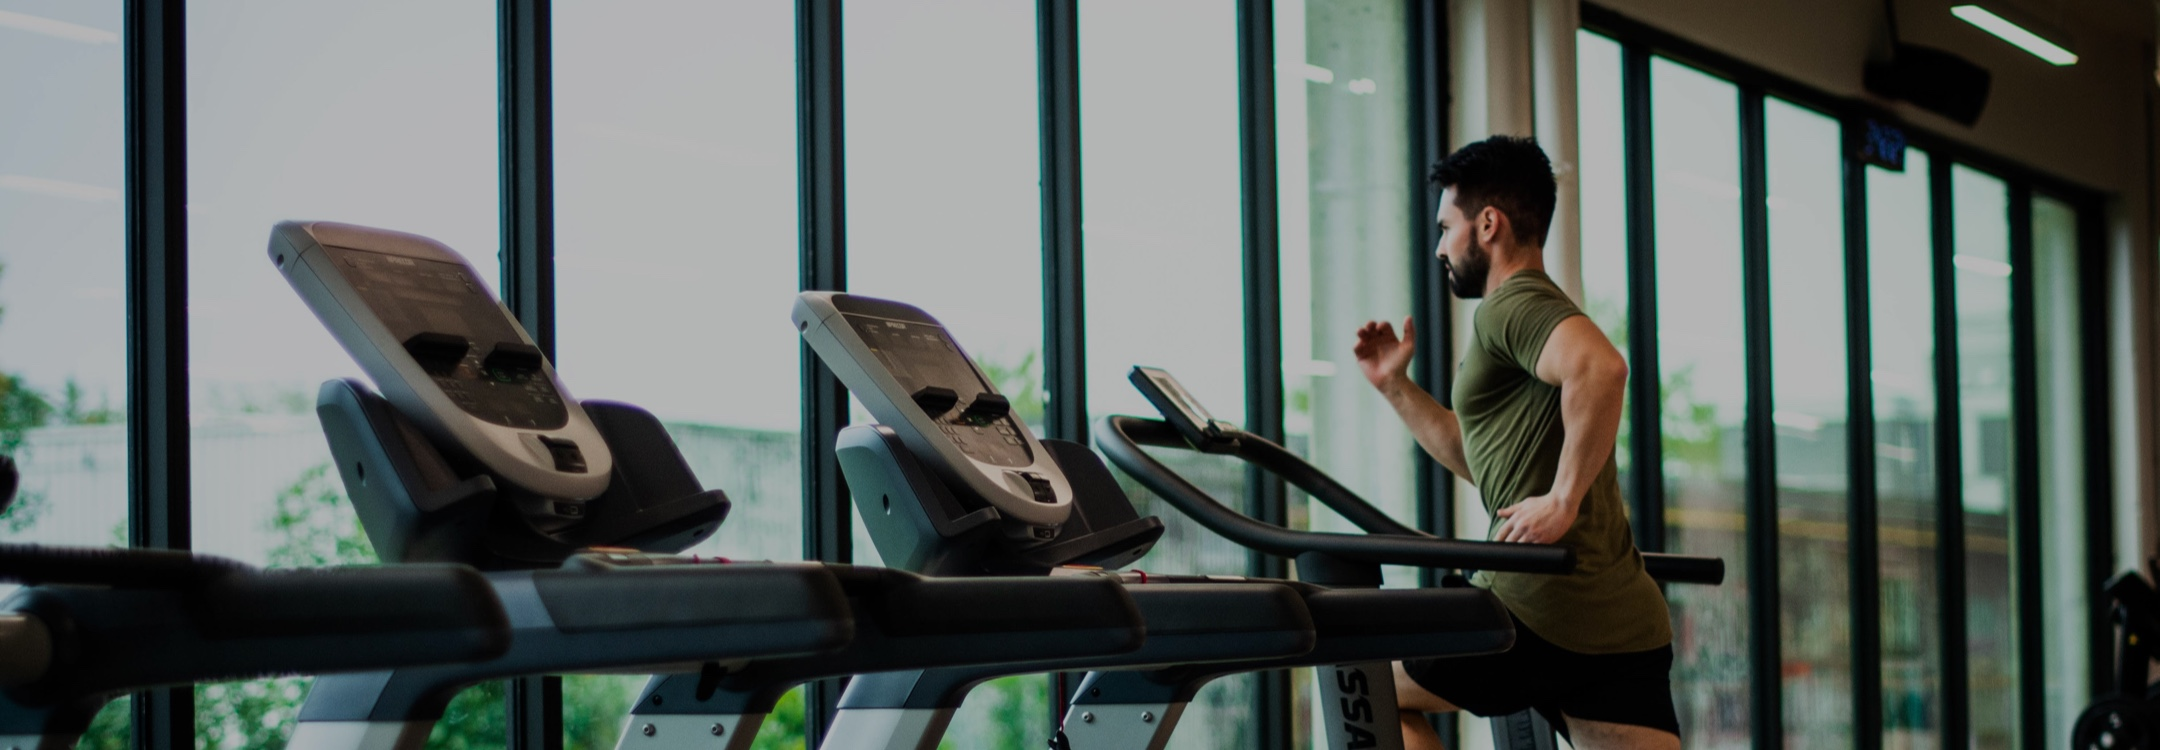 Image of athletic male on treadmill while using Les Mills video streaming mobile app.